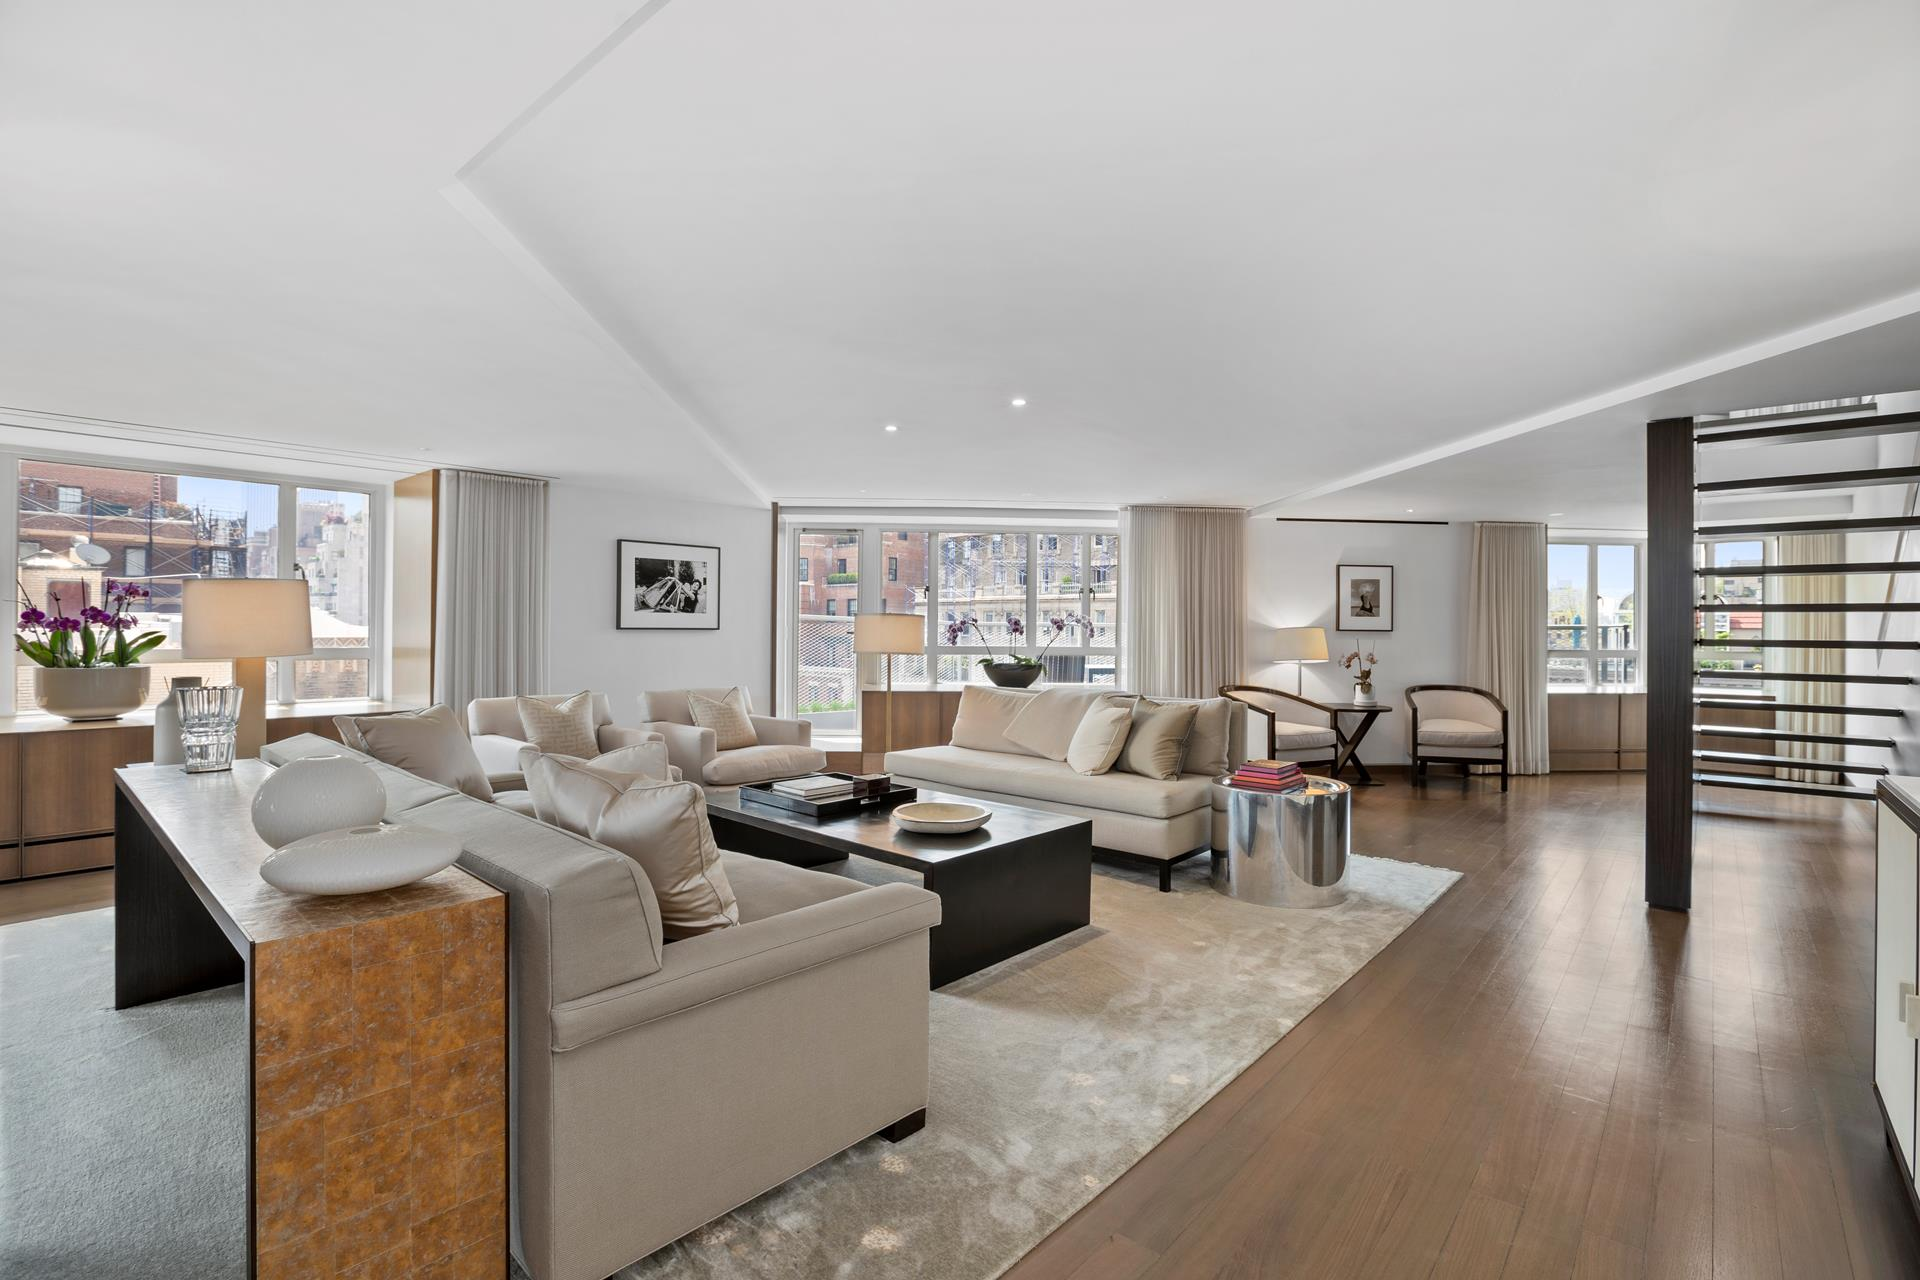 Exquisitely renovated by renowned designer Russel Grove and featured in Architectural Digest, this 5,200 sq. ft. 10-room duplex residence with 705 sq. ft. of private terraces offers gorgeous views of the city, Park Avenue and beyond to Central Park and   the city skyline, and features a sprawling double-living room, a spacious dining room, an expansive dream kitchen with adjacent breakfast room, 3-4 bedrooms, a den and home office, 4 full baths, 1 half baths, and two laundry rooms, located in full-service   building on prime Park Avenue.    An entry foyer with two coat closets and a large Travertine stone powder room welcomes you into an expansive corner double living room with open south and west exposures, and access to a decked terrace with views of Park Avenue and Central Park. There is a   large formal dining room, also with access to its own planted terrace -- which has an automated irrigation system -- and flows seamlessly into a media room and the oversized Boffi chef's kitchen with its spacious breakfast room and a wall of windows with open   north exposures. This dream kitchen features top-of-the-line finishes and appliances, including Calacatta marble counters, custom-built lacquered cabinetry, Gaggenau refrigerator, two side-by-side SubZero wine coolers, two Miele dishwashers, Miele double-oven,   a six-burner Gaggenau cooktop with ceiling-mounted canopy, and a large walk-in pantry with a second refrigerator, SubZero icemaker, and abundant storage.    There is a separate bedroom wing with two generously proportioned west-facing bedrooms with open city views, one with an en suite bathroom decked in Travertine stone floors and vanity, and a large glass-enclosed rain-shower stall. The other bathroom also has   Travertine stone floors and vanity, and a glass-enclosed soaking tub. In addition, there is a large laundry room with motion-activated lighting, Miele washer and dryer, sink, and storage cabinets.    An architecturally designed cantilevered staircase 